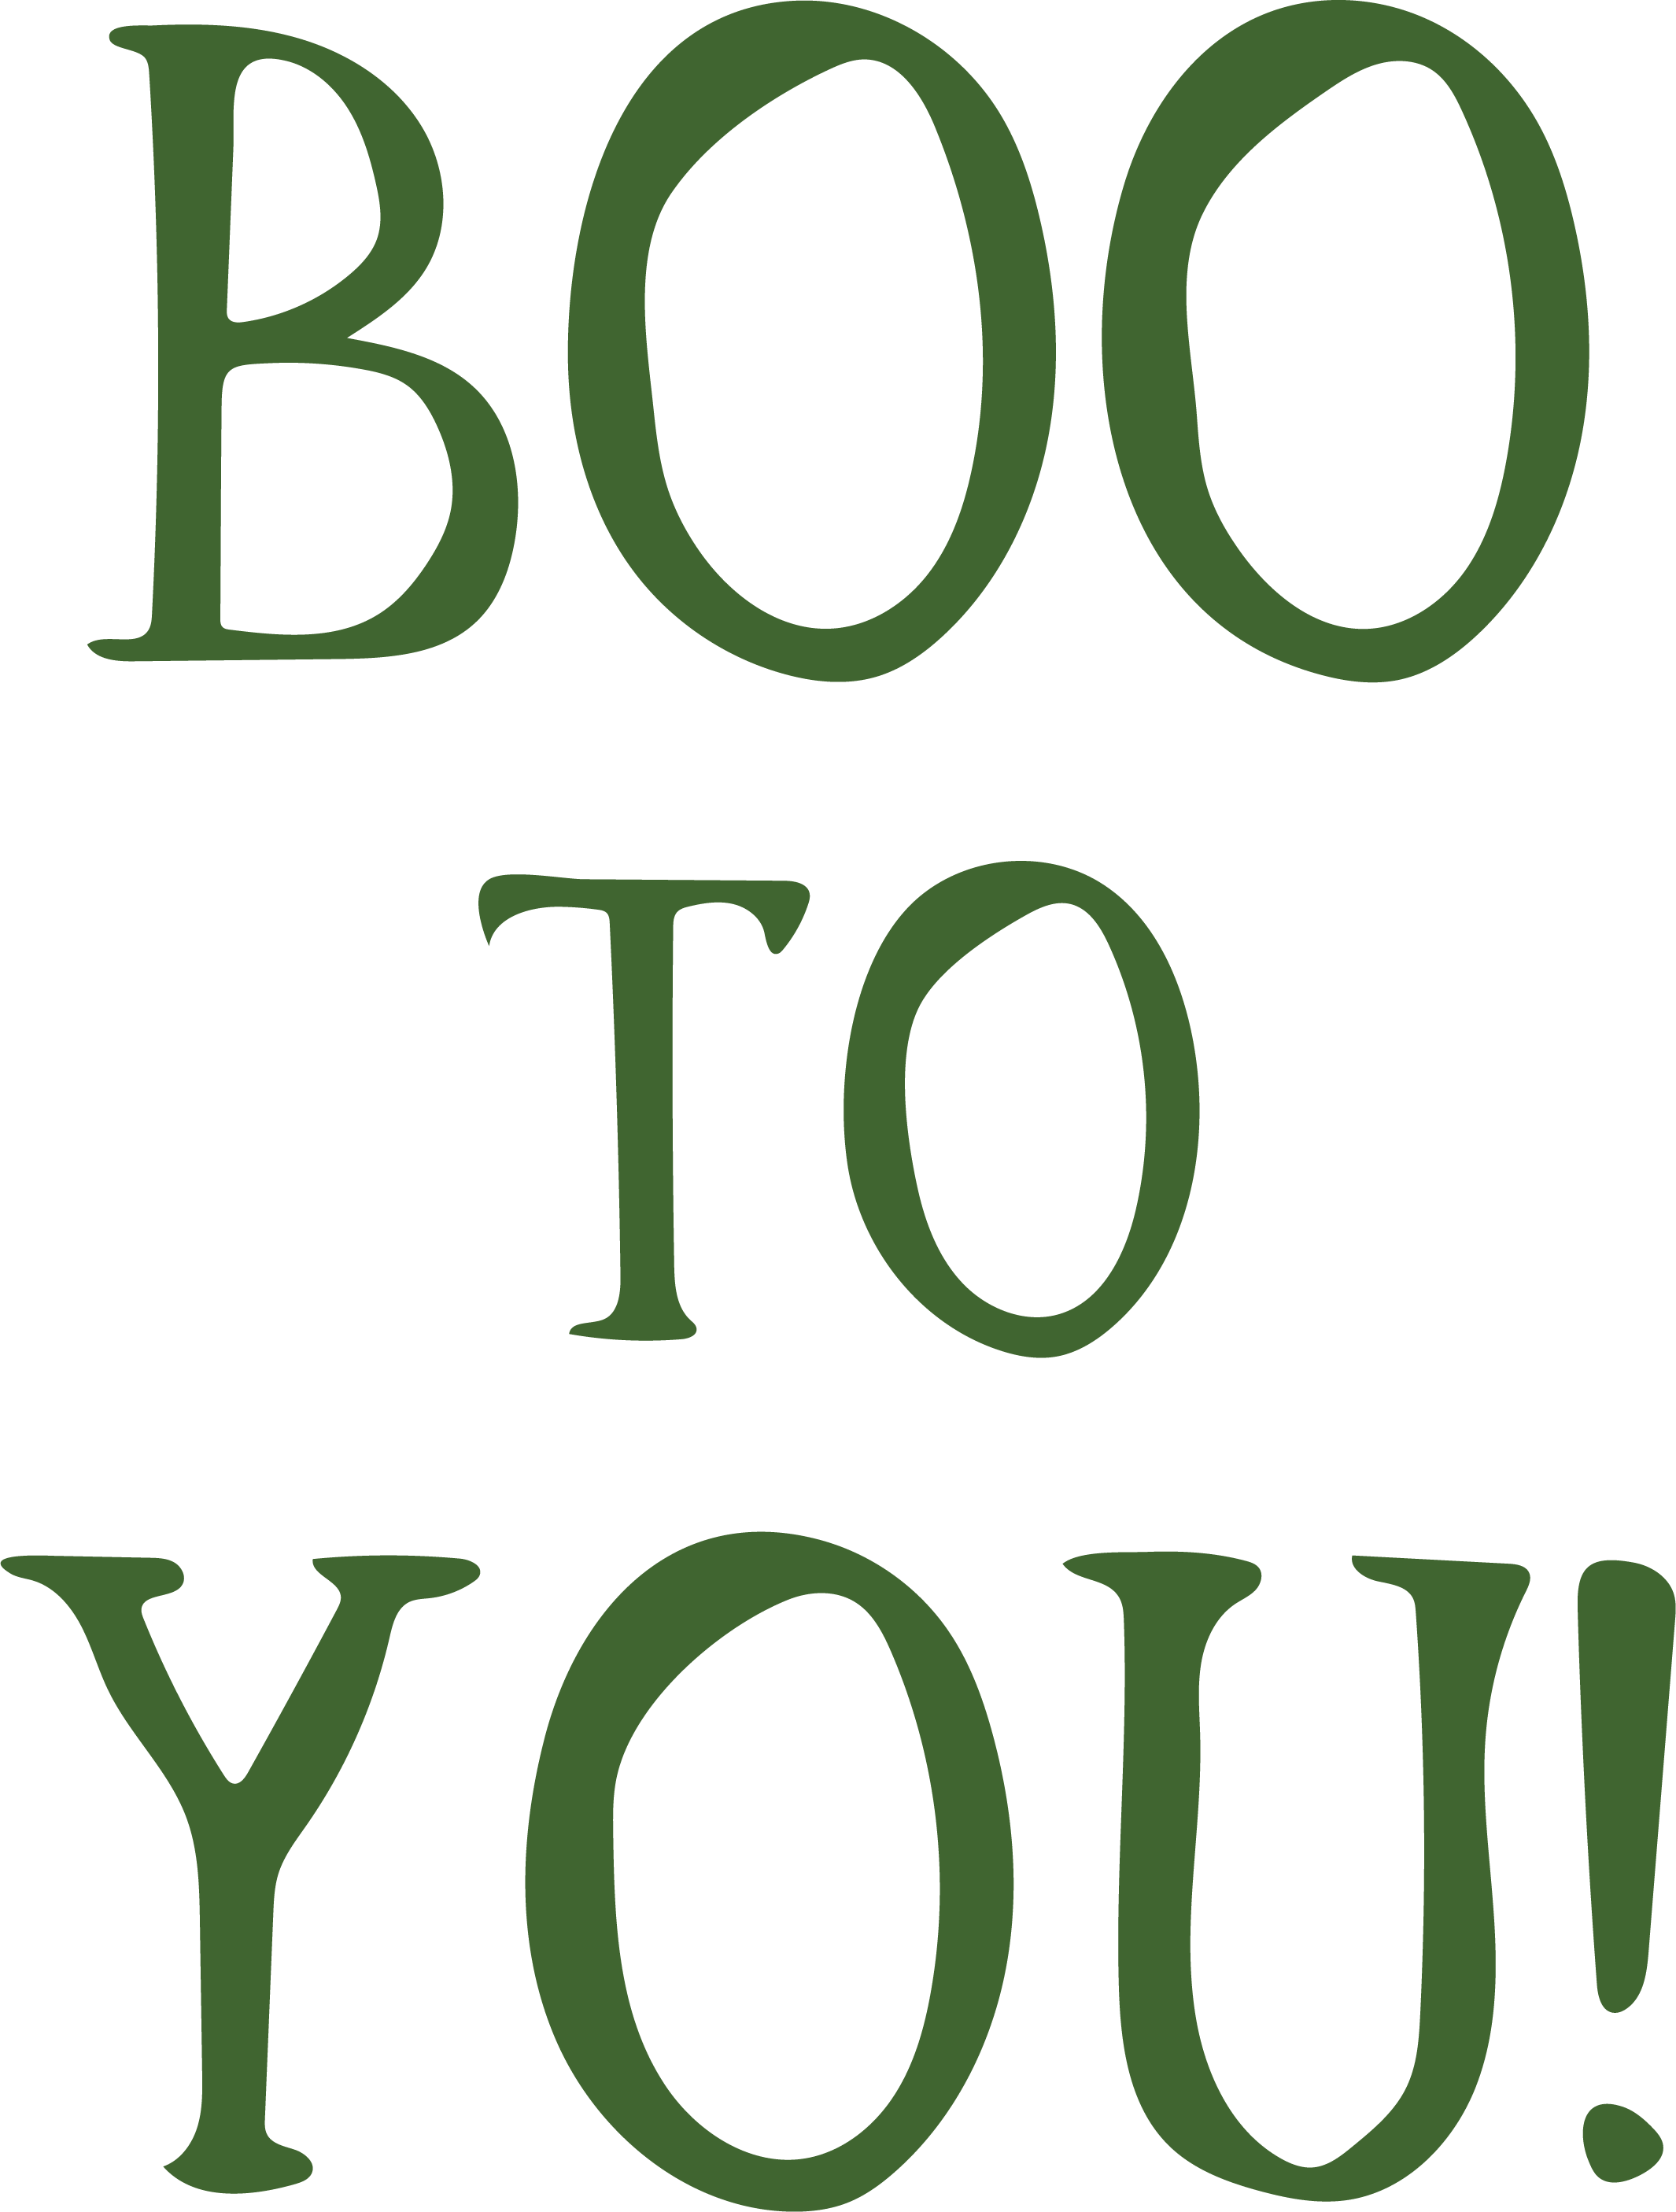 Boo To You SVG Cut File